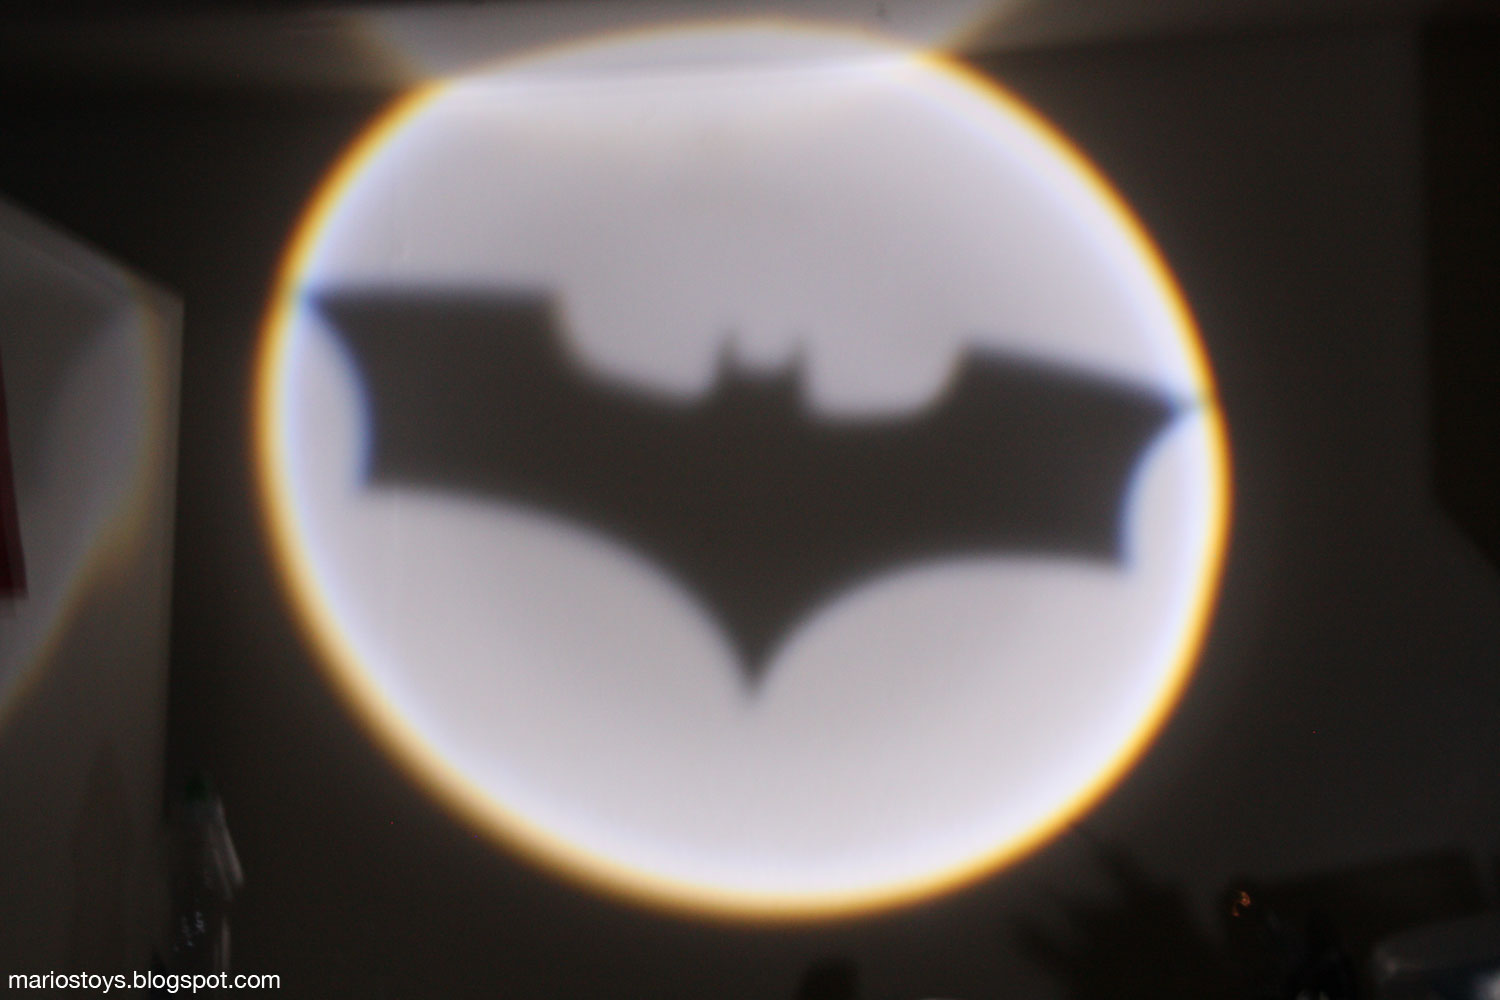 A year of toys 83 the dark knight rises movie masters heres the batsignal in action in my kitchen its hard to properly focus in the dark so its a bit sharper than the picture suggests buycottarizona